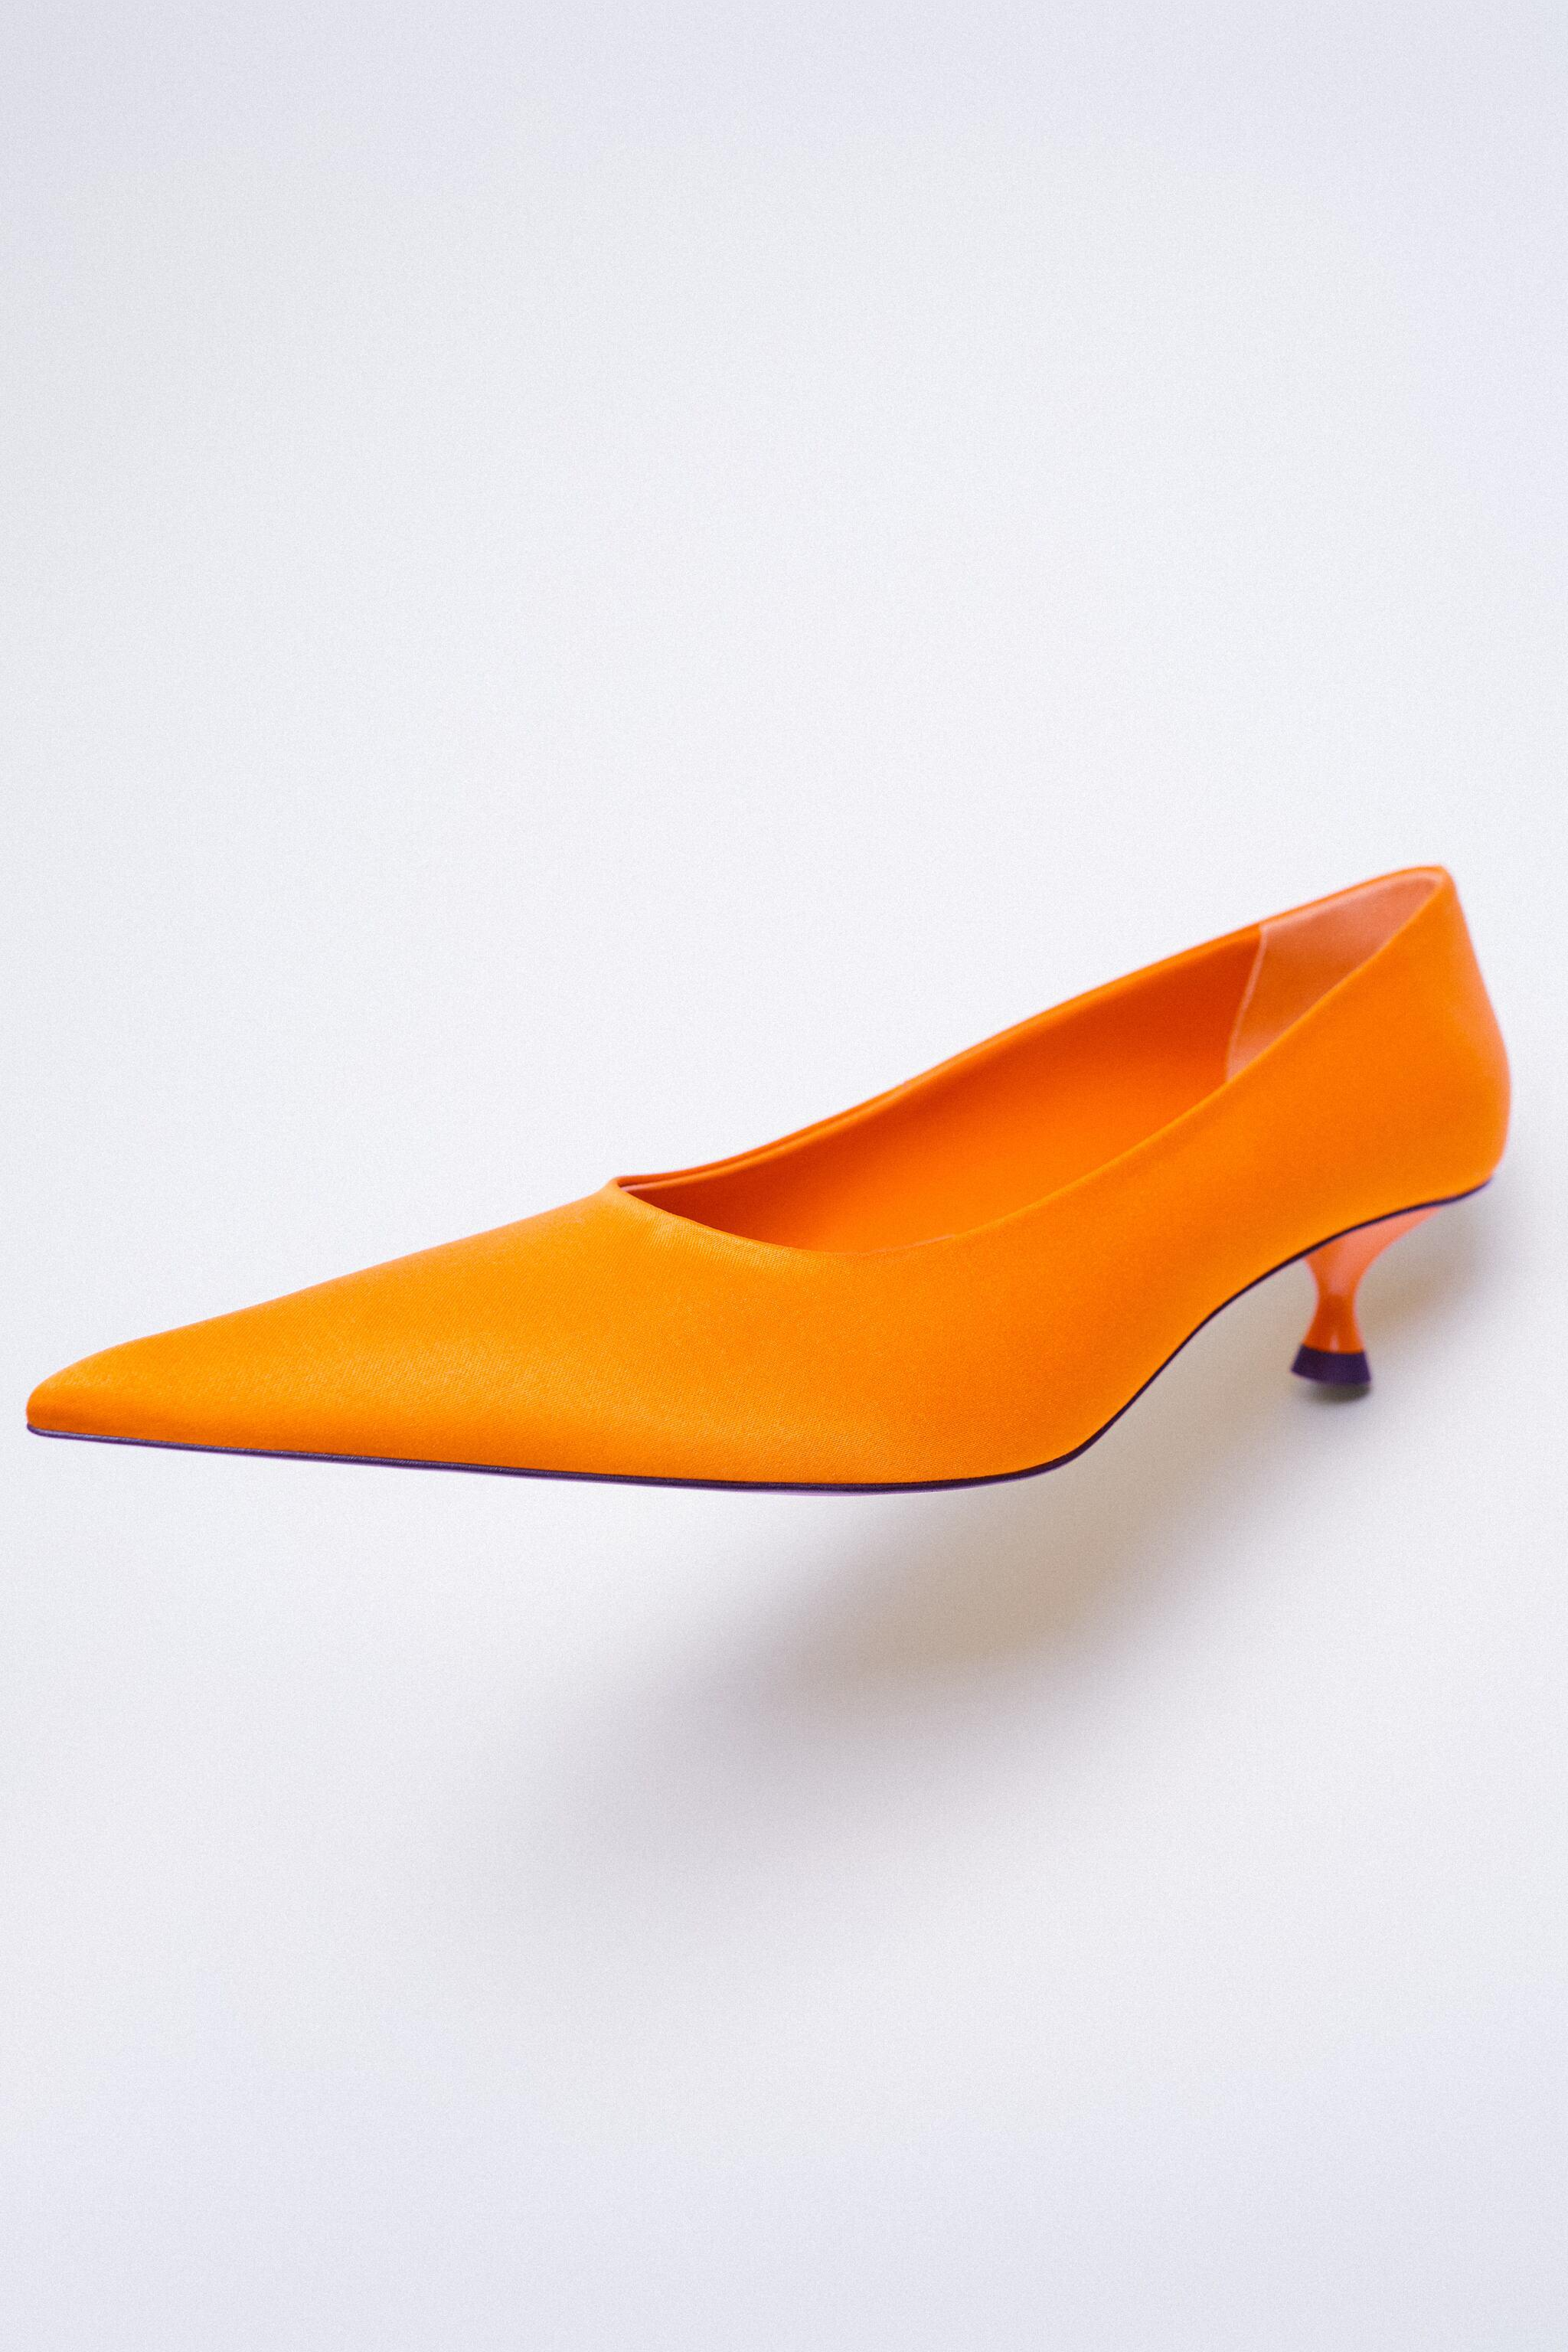 SATIN EFFECT POINTED TOE HEELS 11